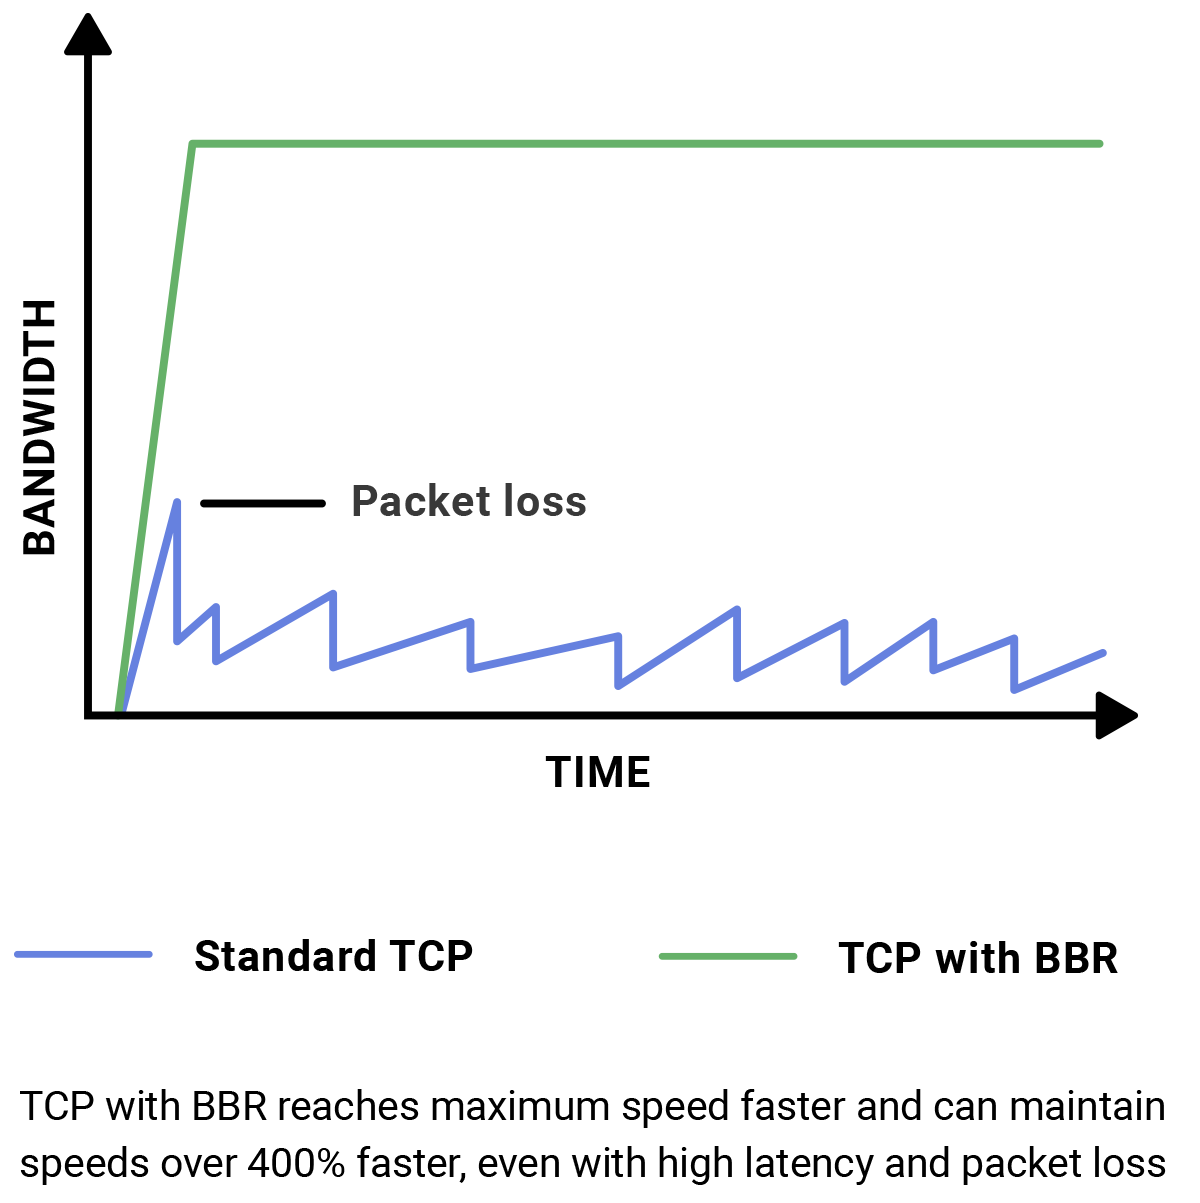 Chart showing advantage of TCP with BBR over standard TCP